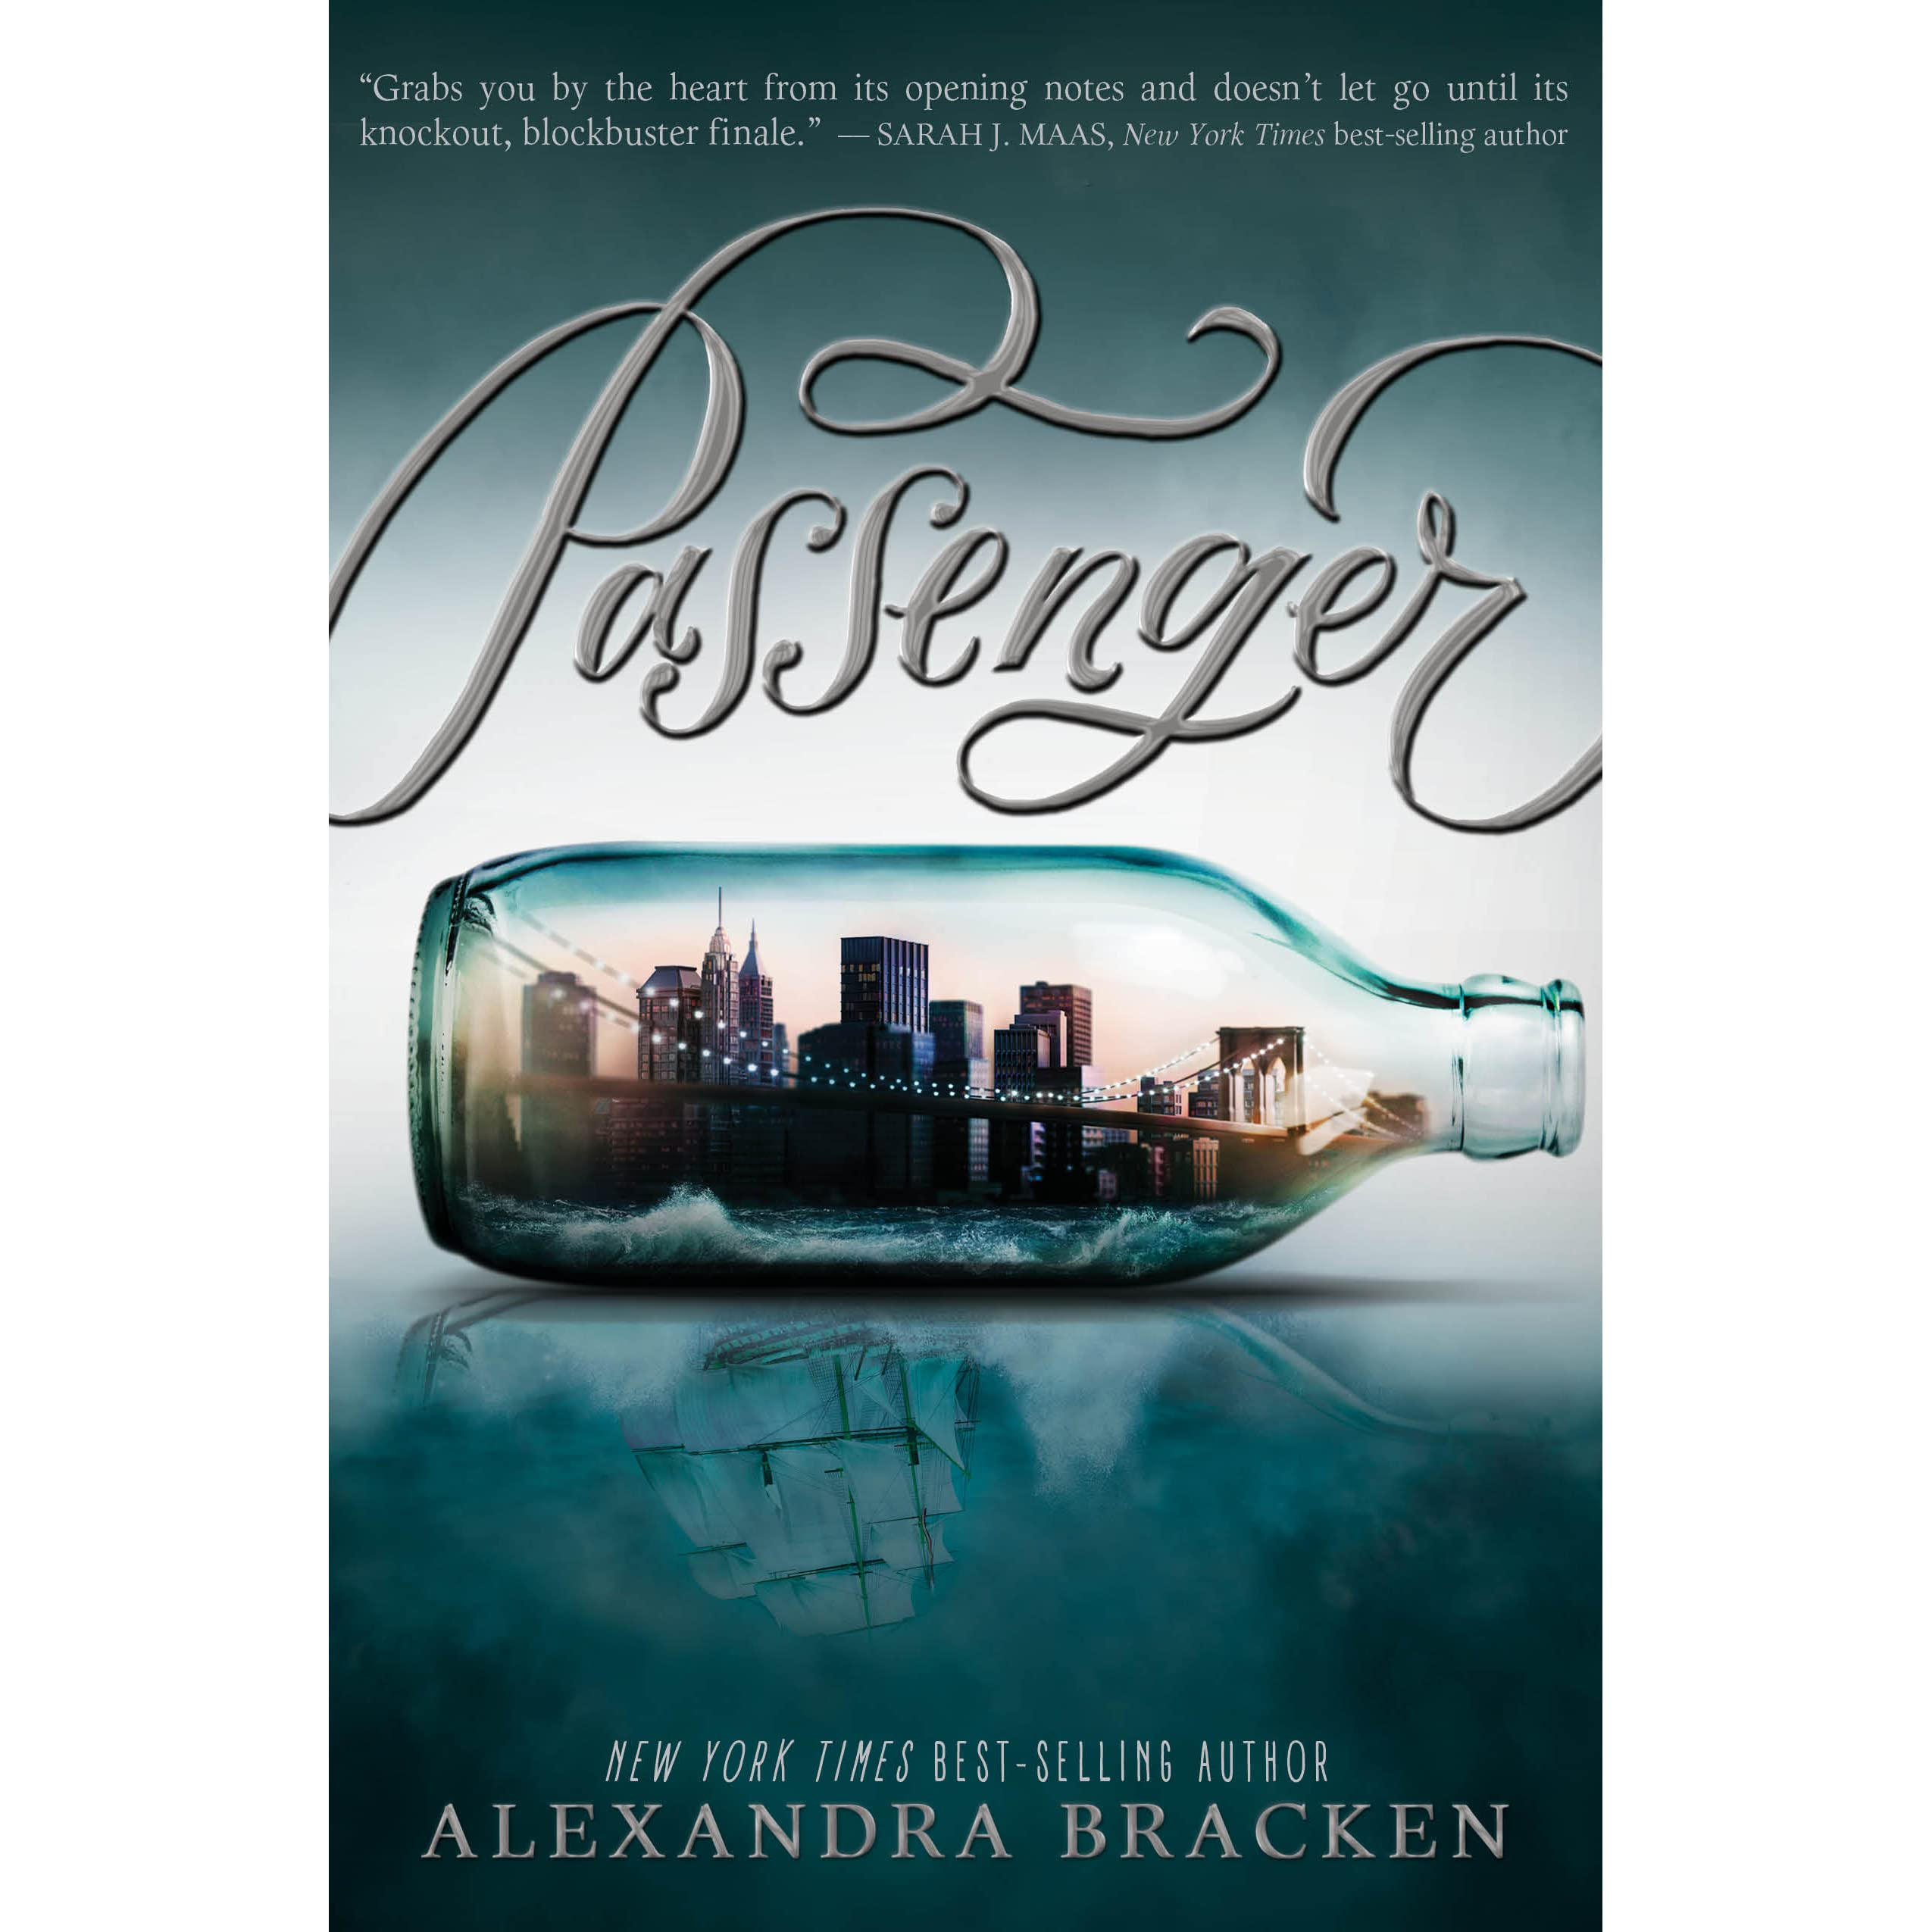 passenger passenger 1 by alexandra bracken reviews passenger passenger 1 by alexandra bracken reviews discussion bookclubs lists